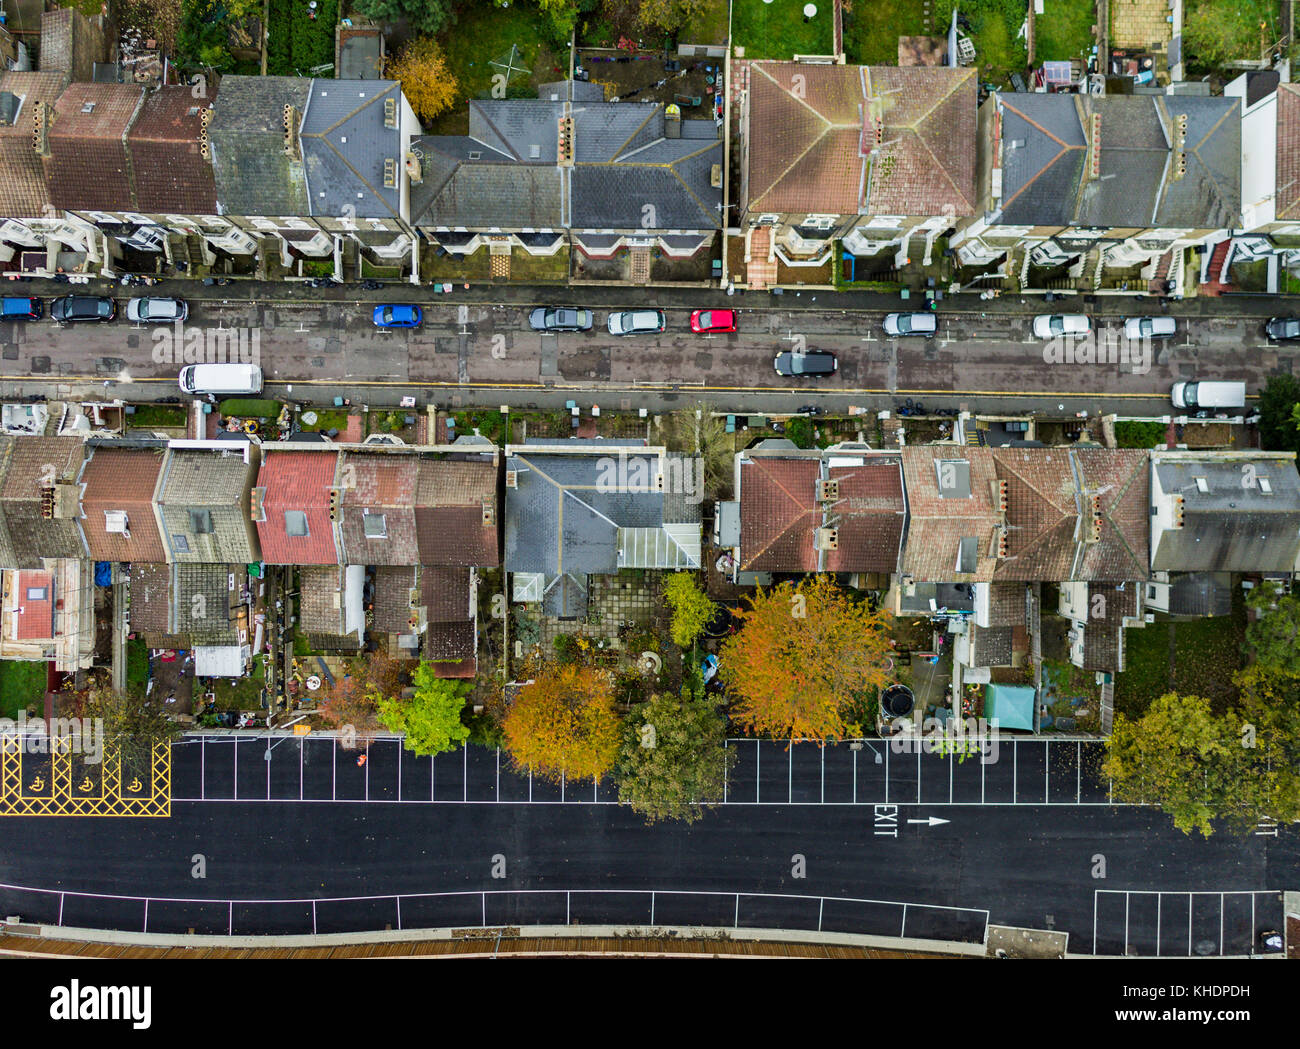 Drone topdown view of residential housing in Gravesend, Kent, UK - Stock Image